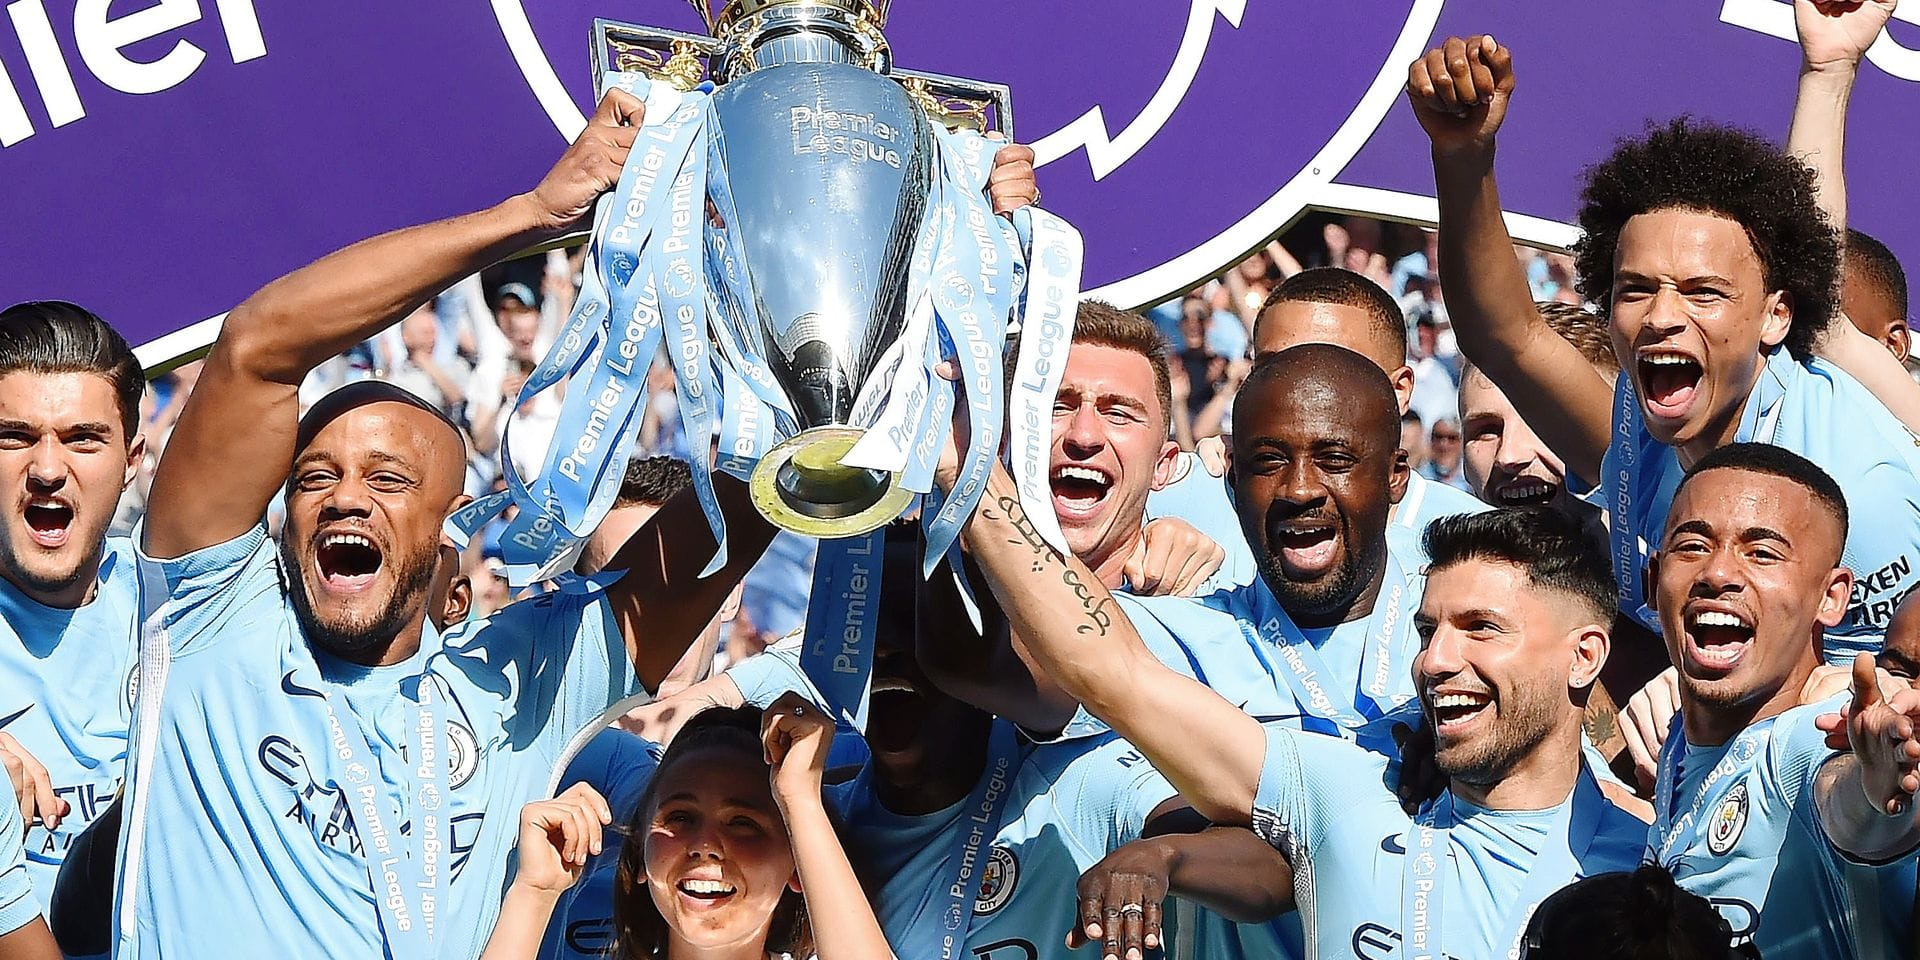 TOPSHOT - Manchester City's captian, Belgian defender Vincent Kompany (2nd L) and Manchester City's Argentinian striker Sergio Aguero lift up the Premier League trophy on the pitch after the English Premier League football match between Manchester City and Huddersfield Town at the Etihad Stadium in Manchester, north west England, on May 6, 2018. / AFP PHOTO / Paul ELLIS / RESTRICTED TO EDITORIAL USE. No use with unauthorized audio, video, data, fixture lists, club/league logos or 'live' services. Online in-match use limited to 75 images, no video emulation. No use in betting, games or single club/league/player publications. /